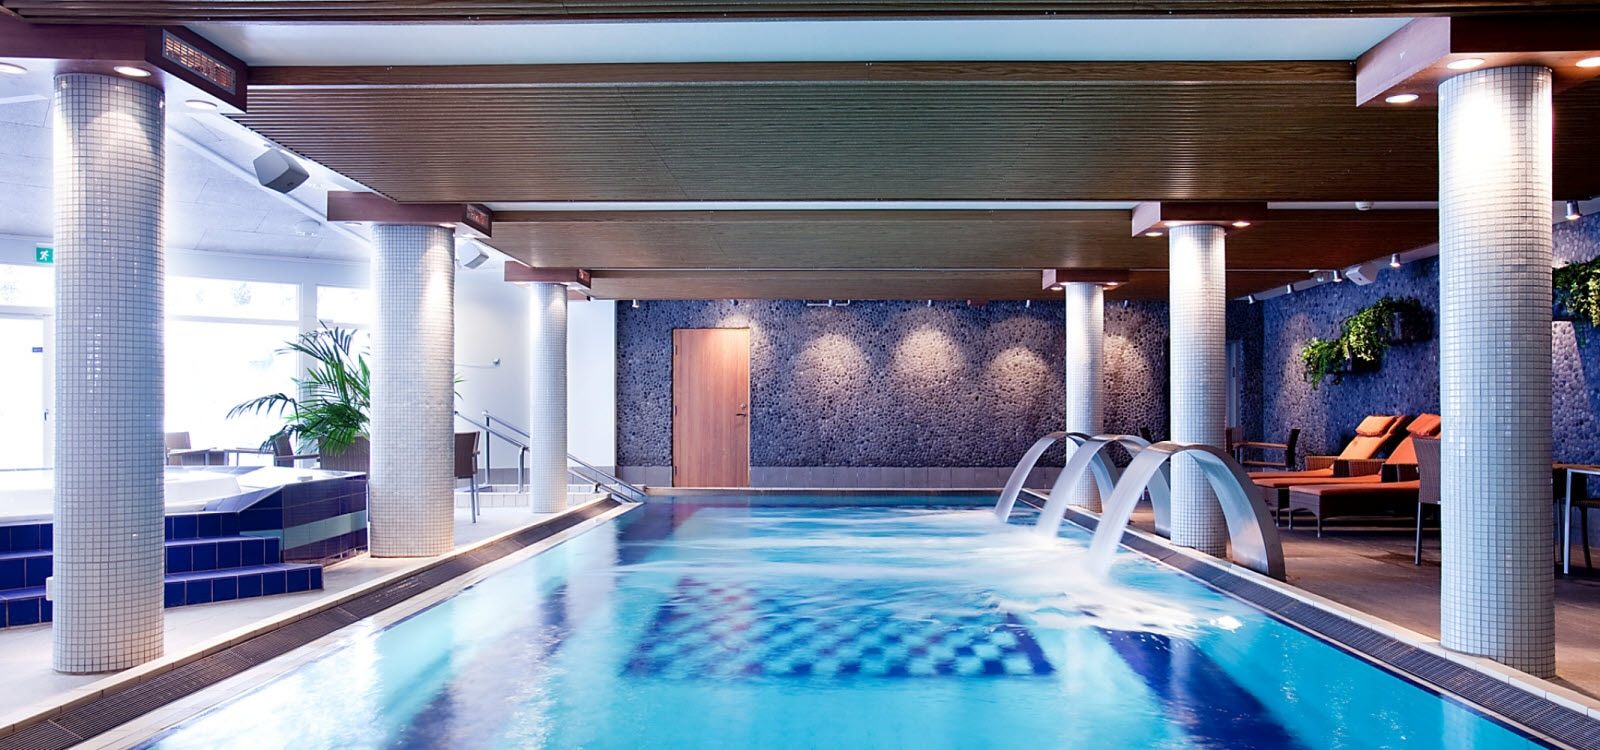 Scandic Skogshojd, Spa, pool